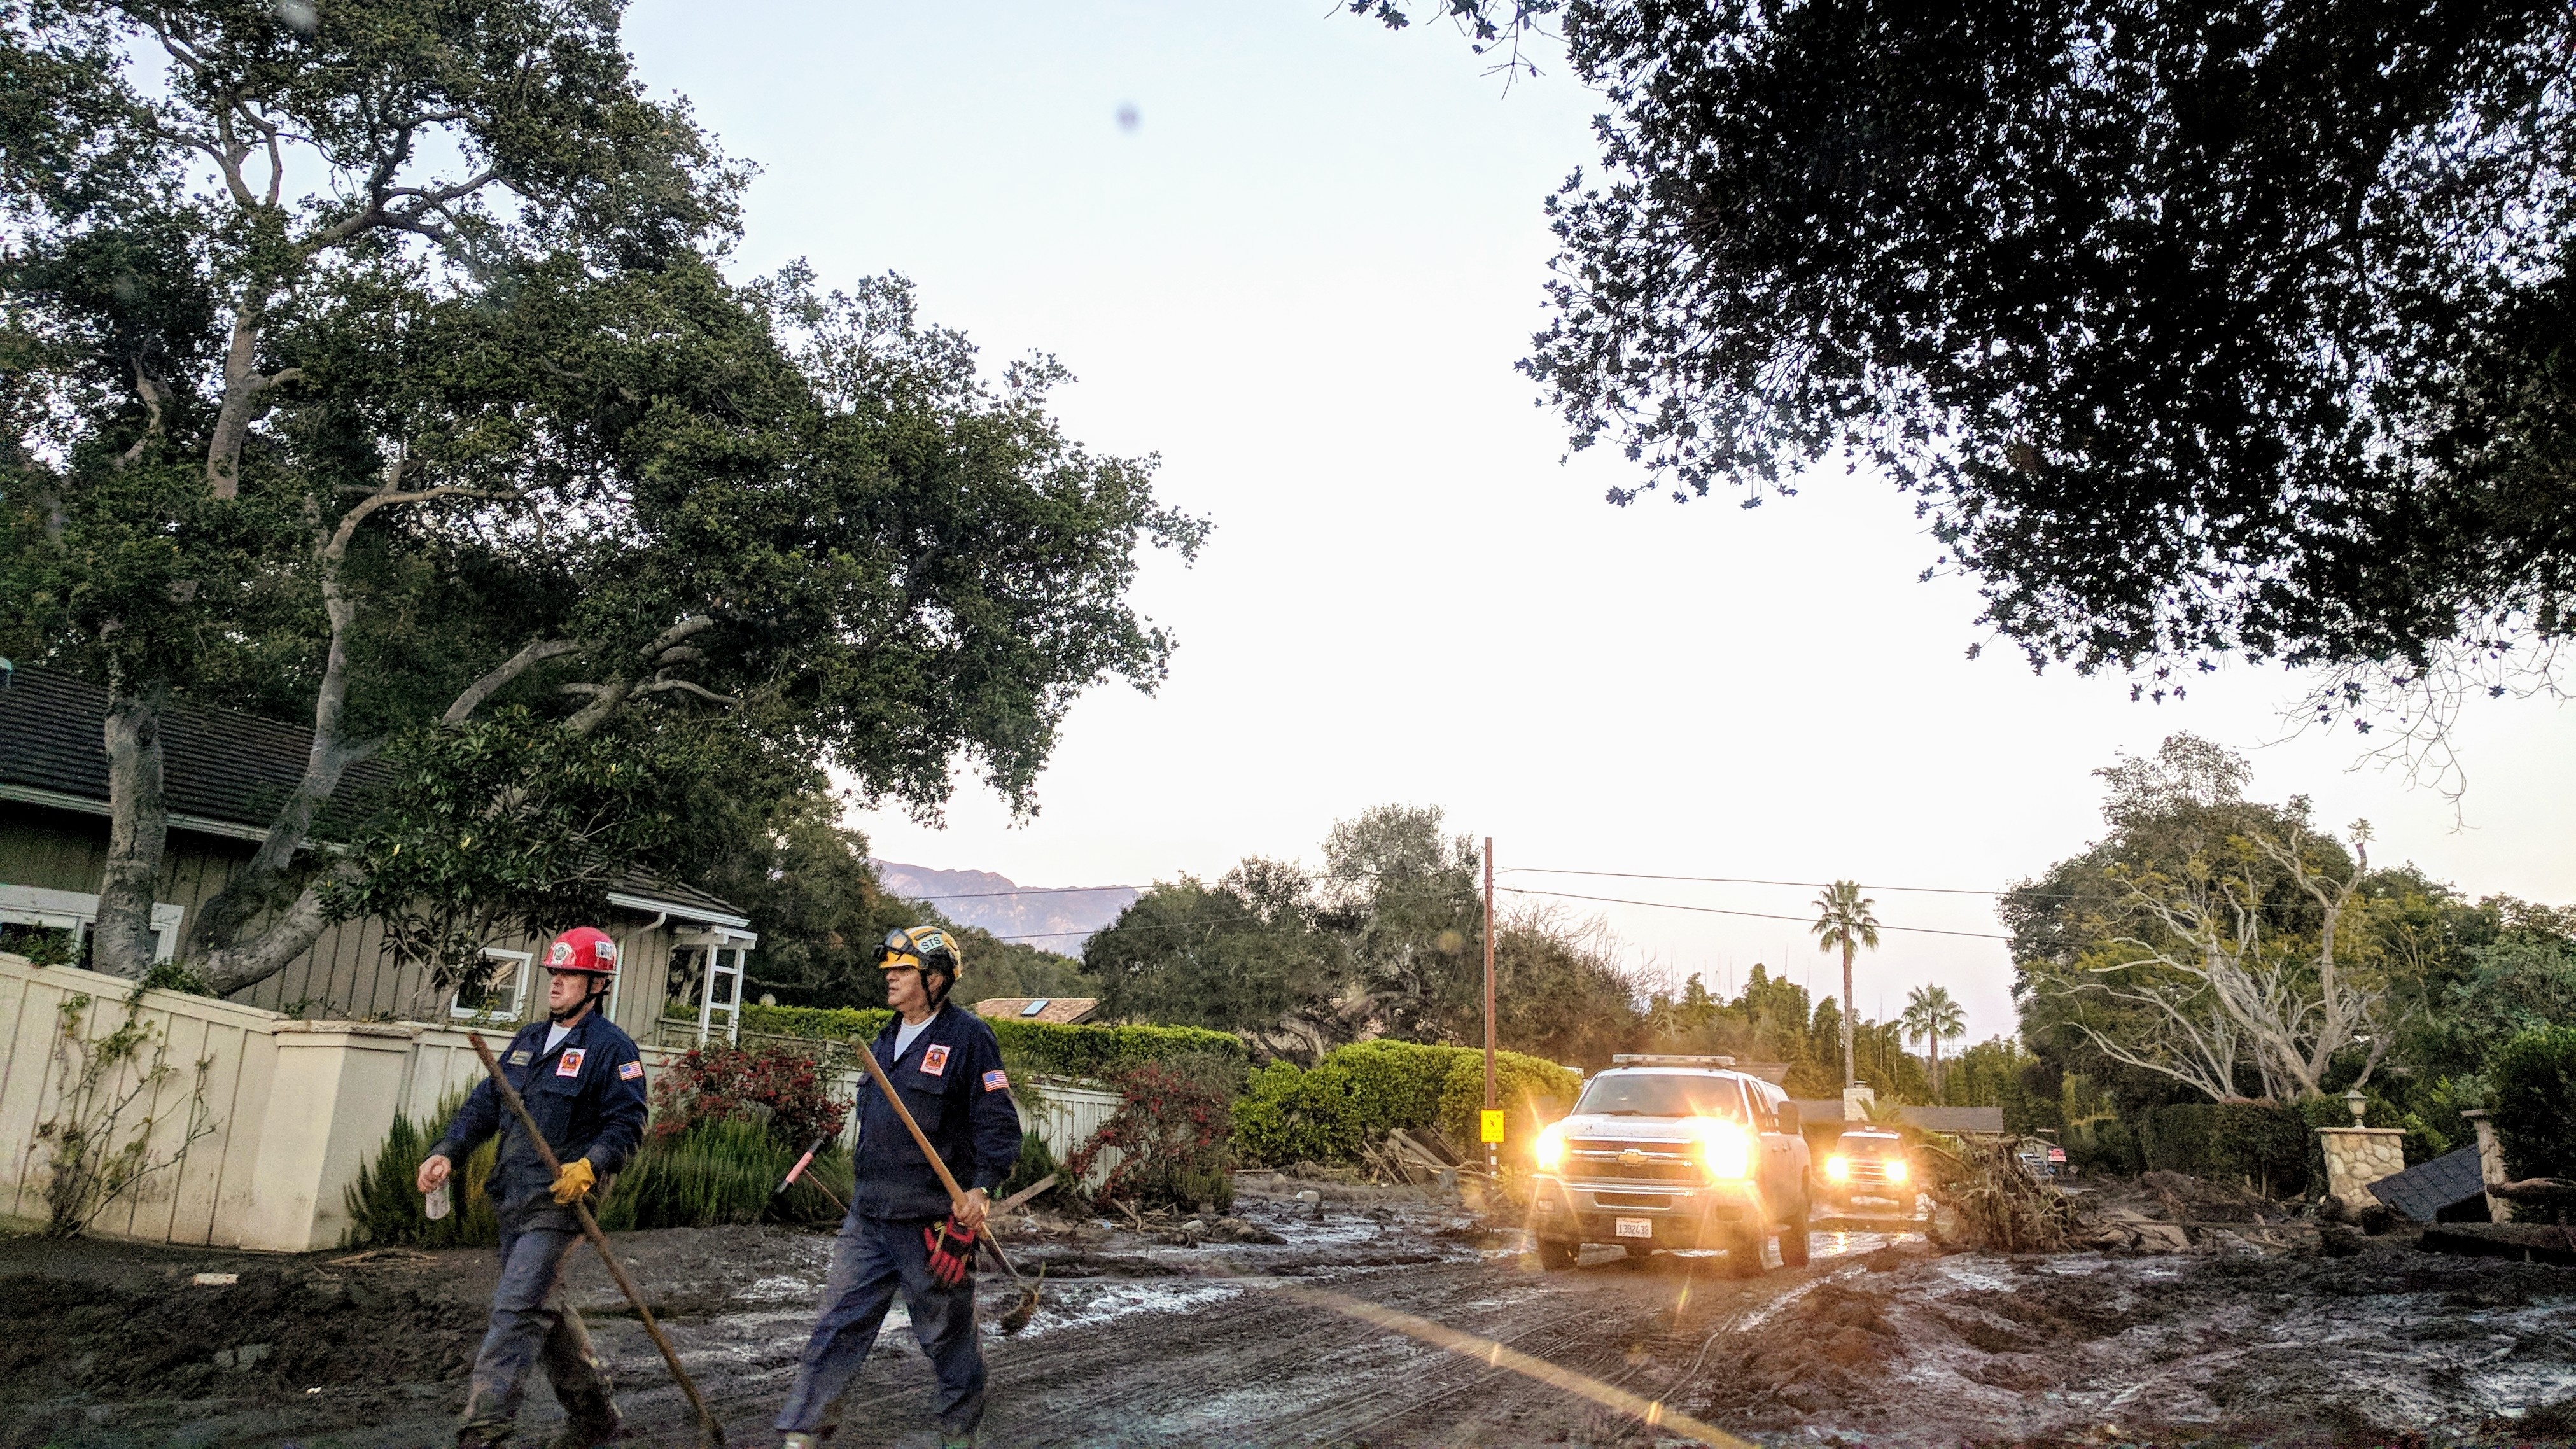 First responders dig through debris in Montecito on Jan. 11, 2018, after the devastating mudslides ripped through fire-impacted communities. The public was advised to be alert to certain health conditions associated with natural disasters, disaster cleanup, and repopulation of impacted areas. (Tony Morain/Direct Relief)